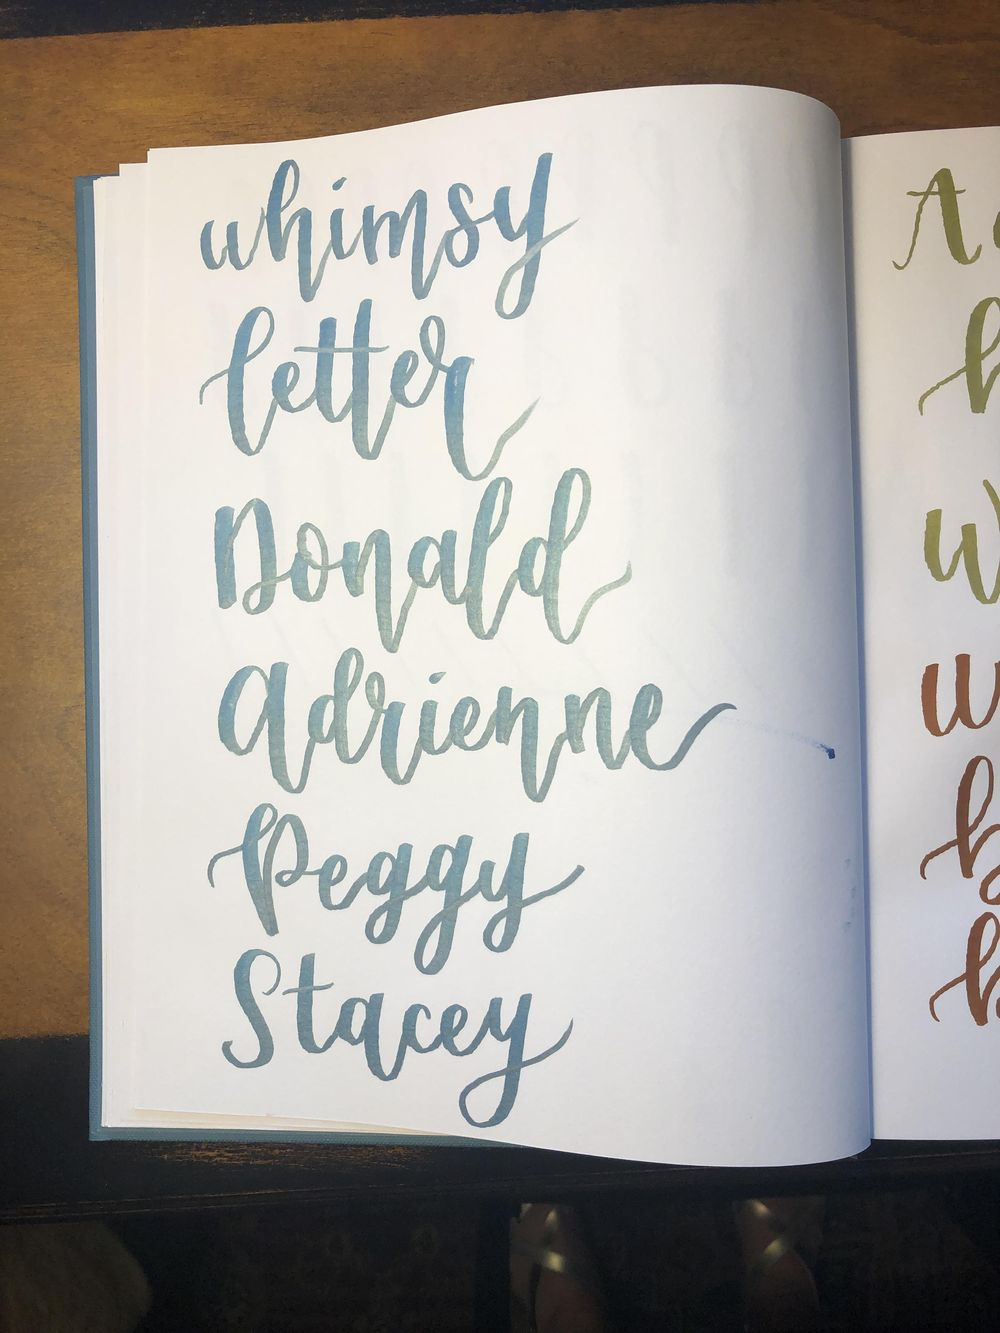 Brush Lettering Class! - image 4 - student project